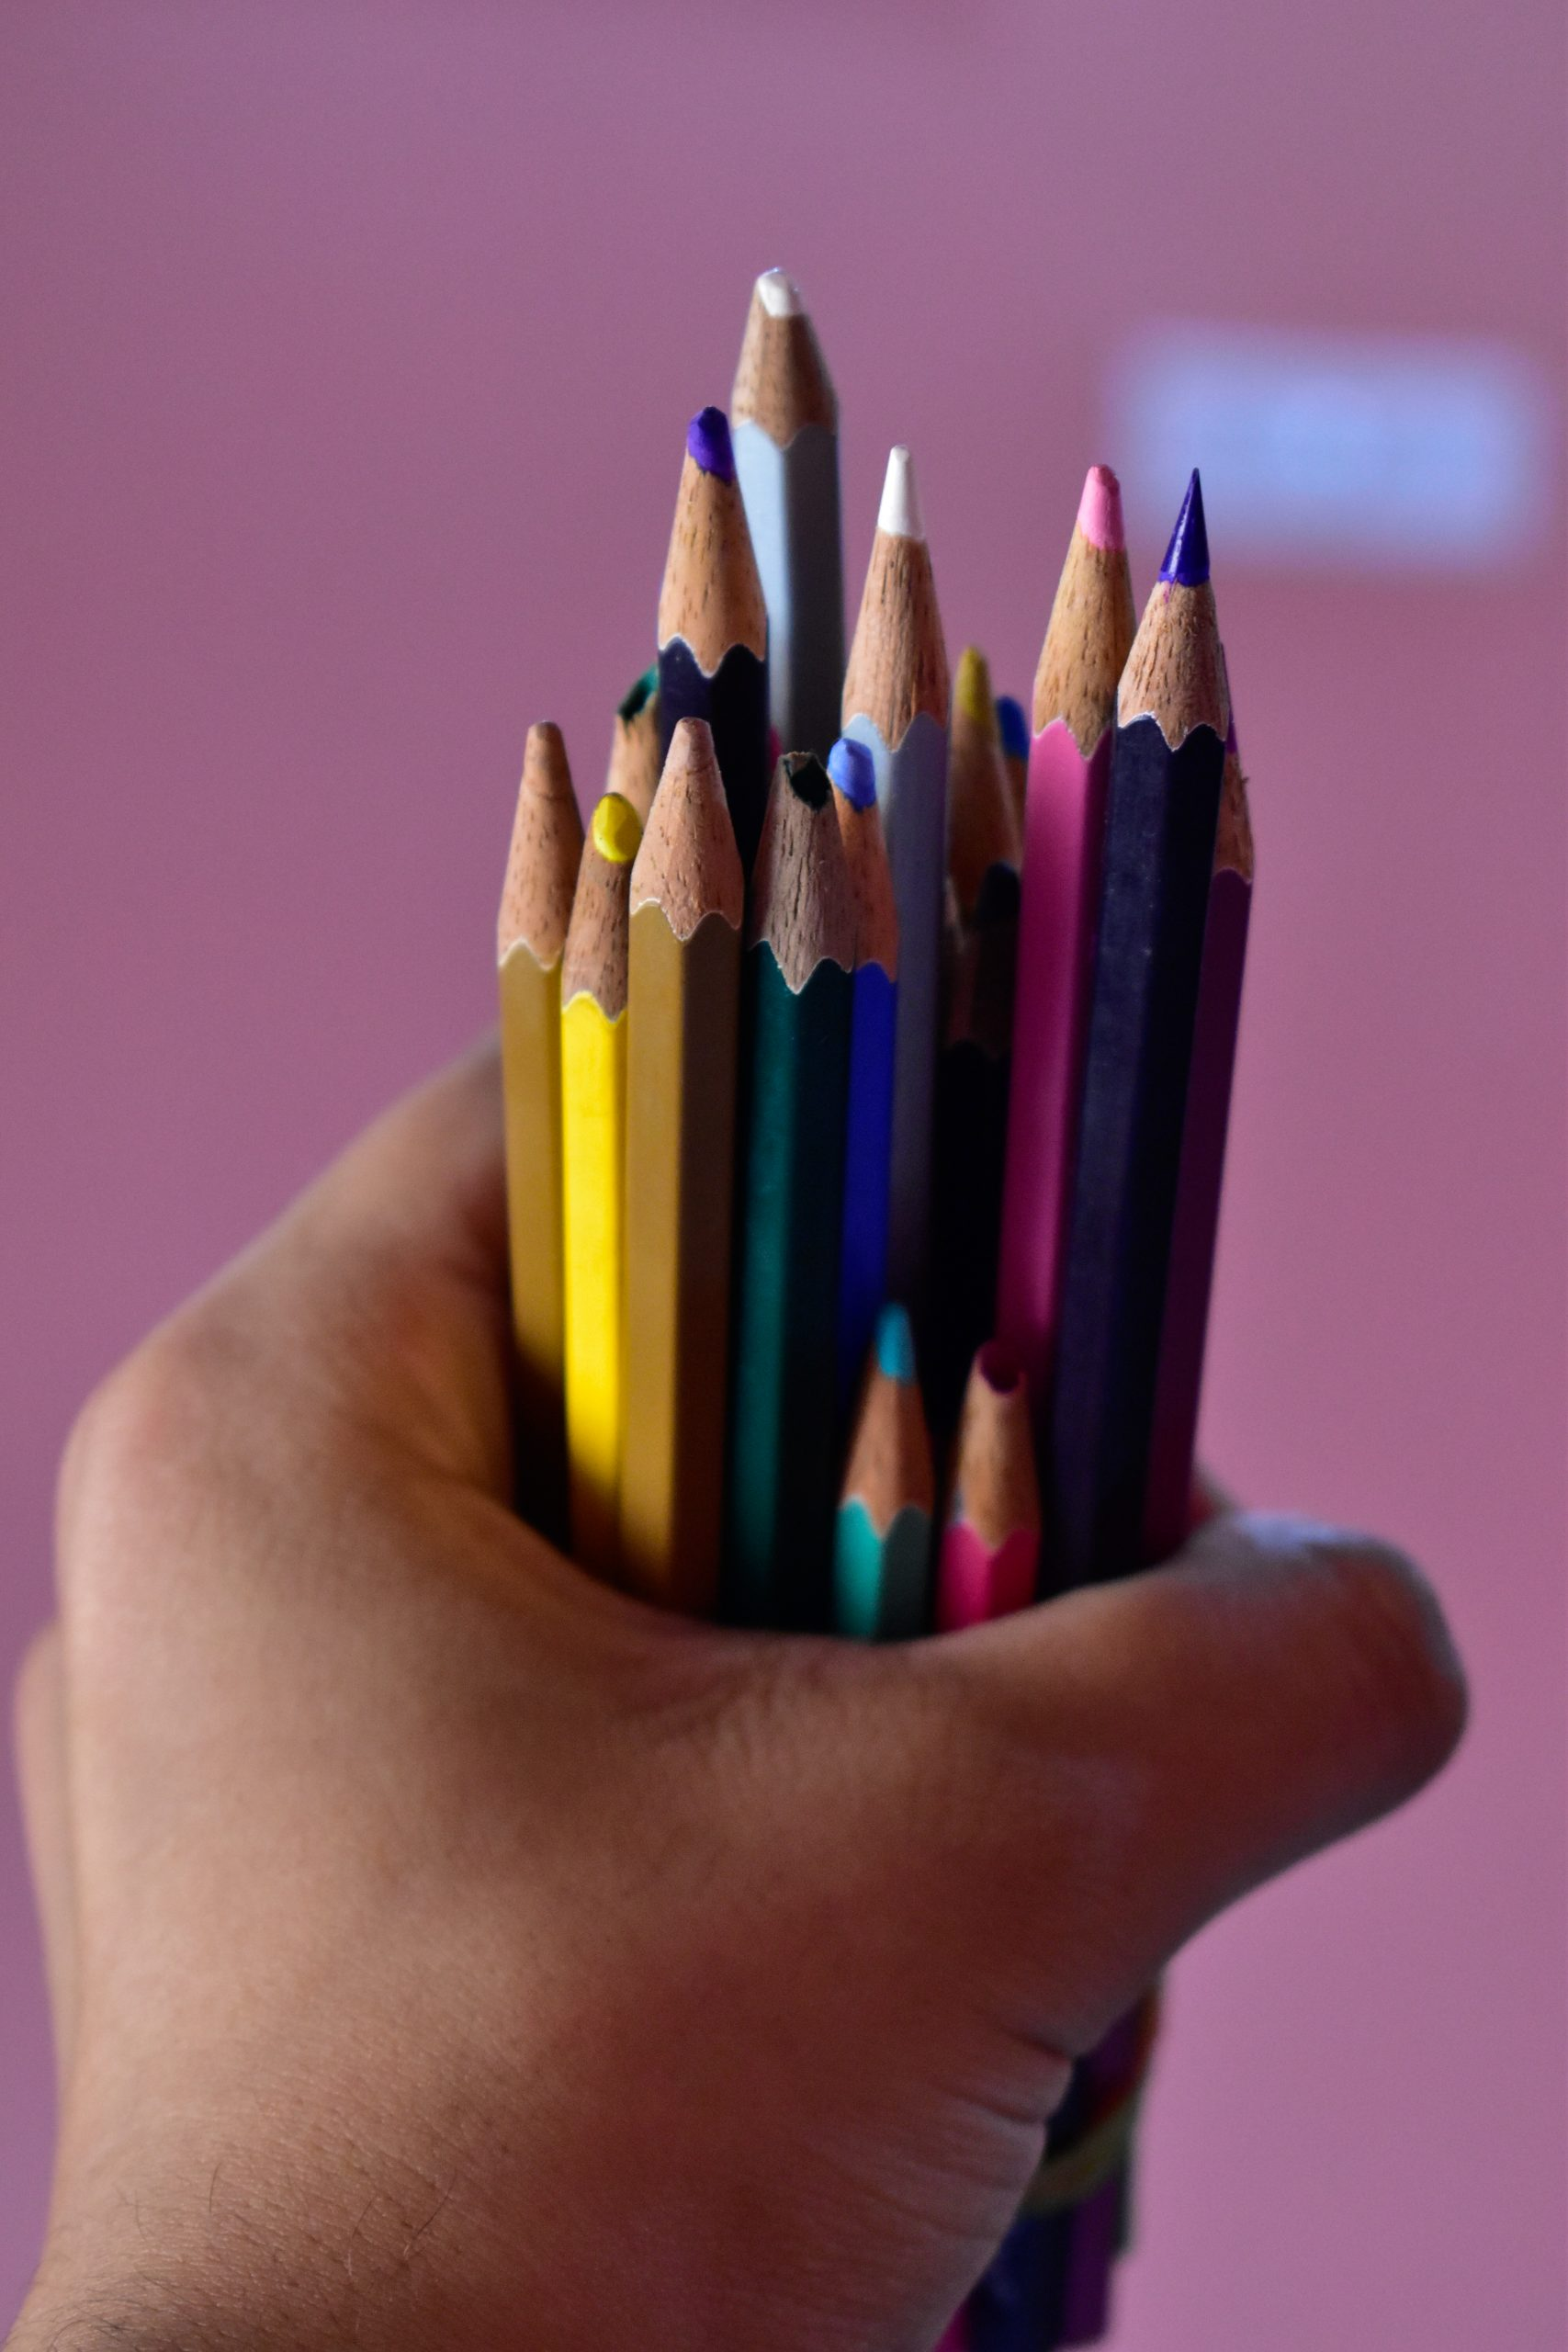 Pencil colors in hand